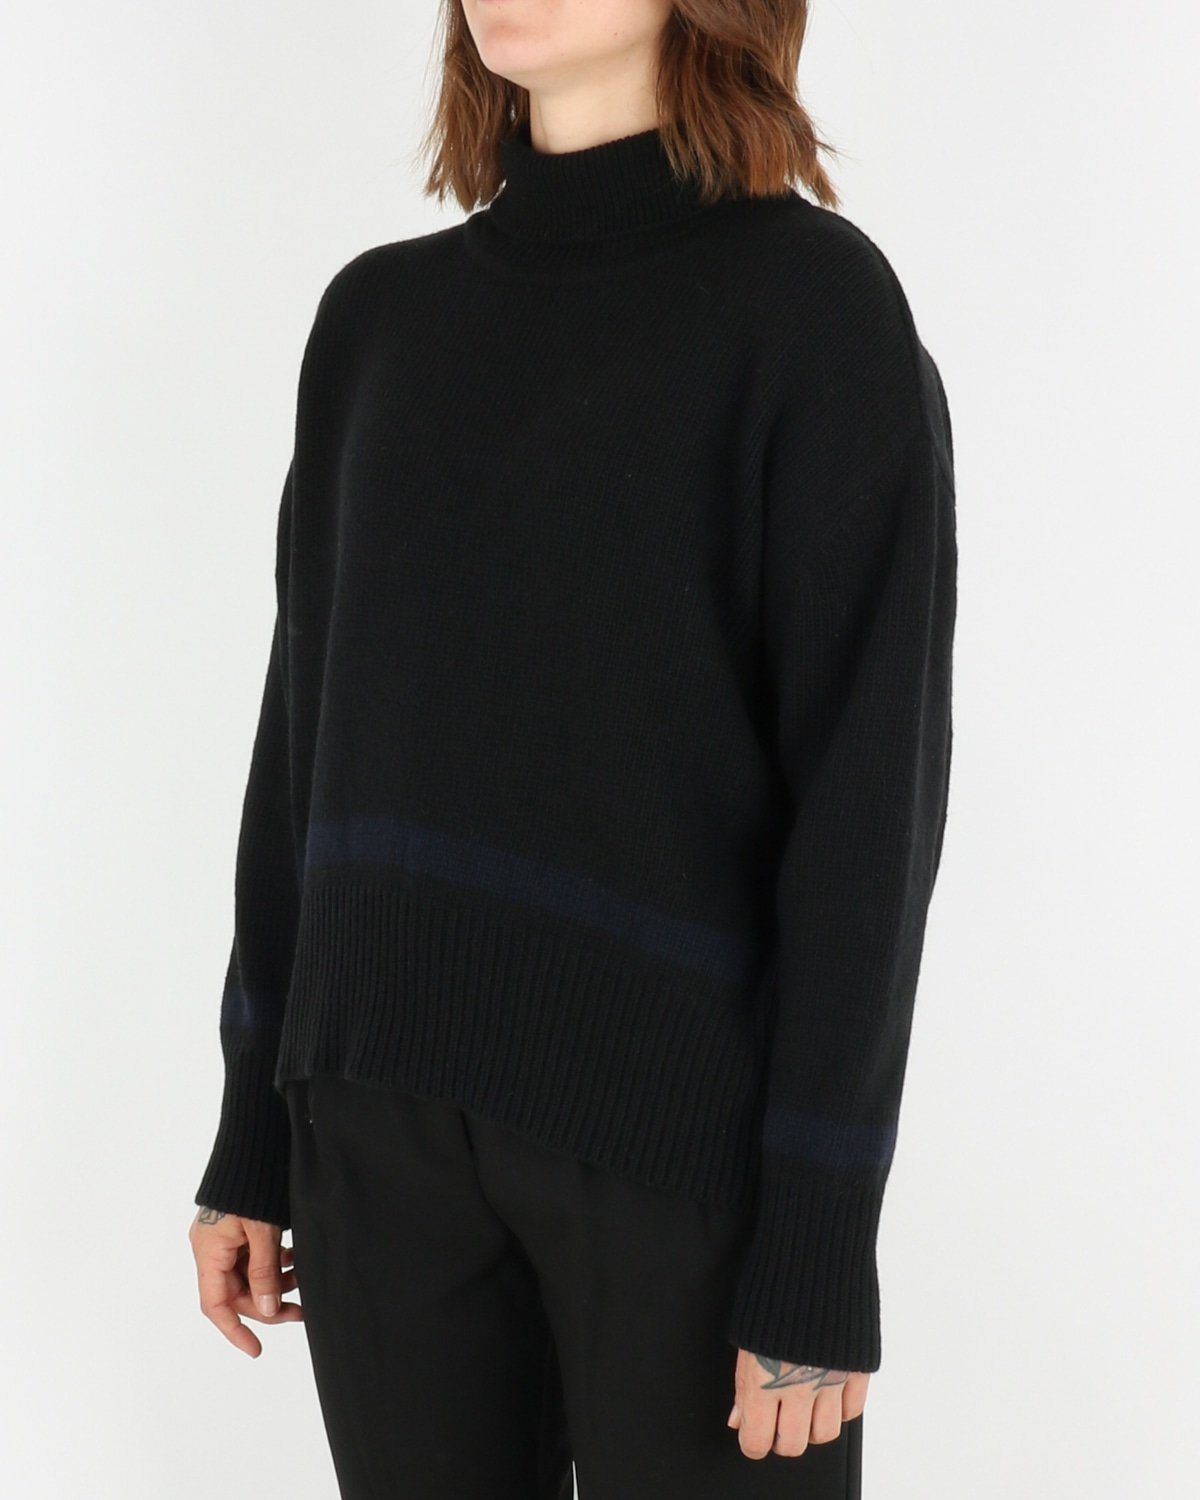 libertine libertine_husky knit_black blue_2_4